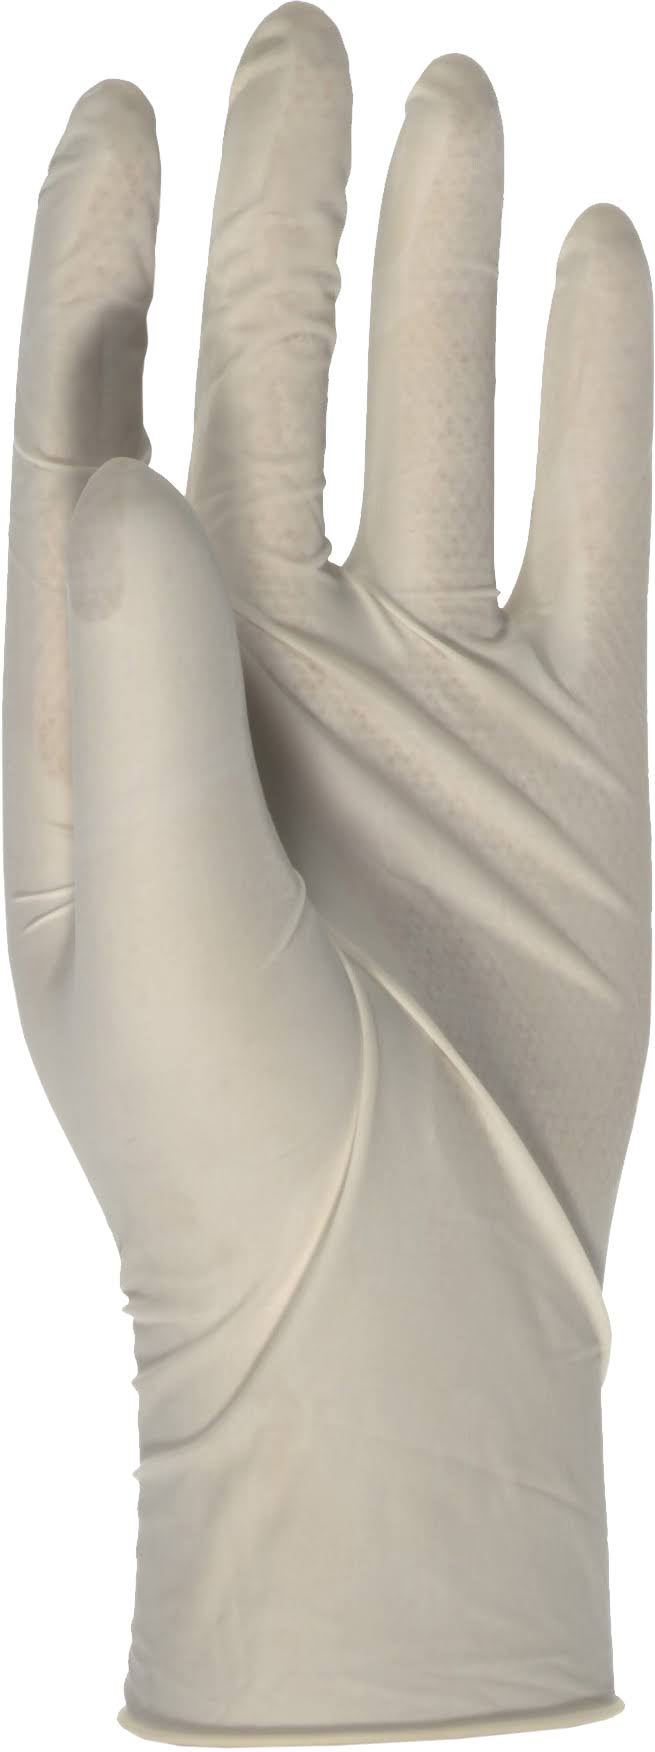 Boss Disposable Latex Gloves - White, Bag of 10